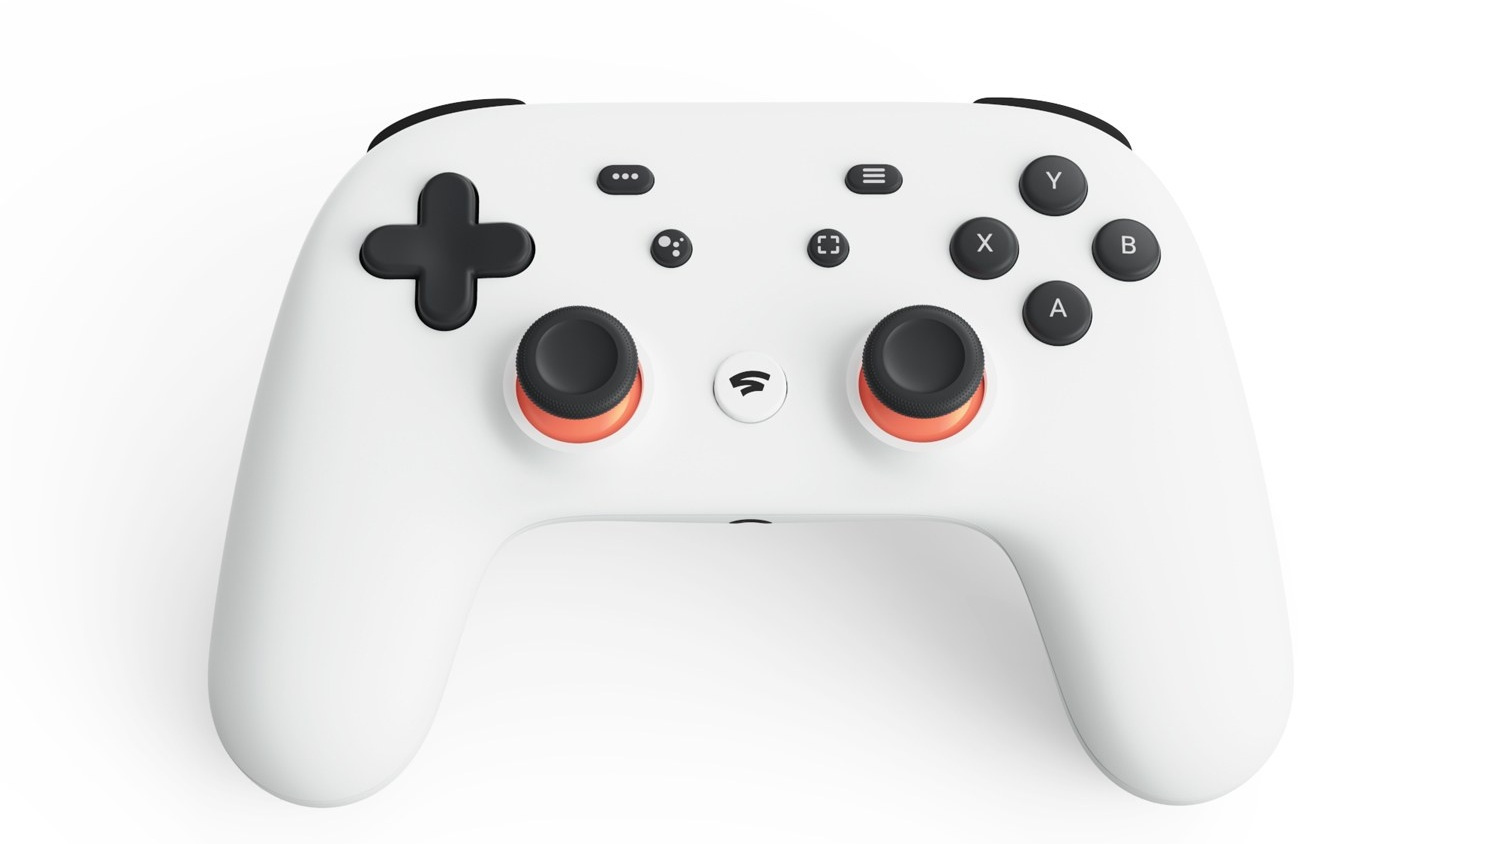 Google's Cloud Gaming Service Stadia Faces Many Competitors